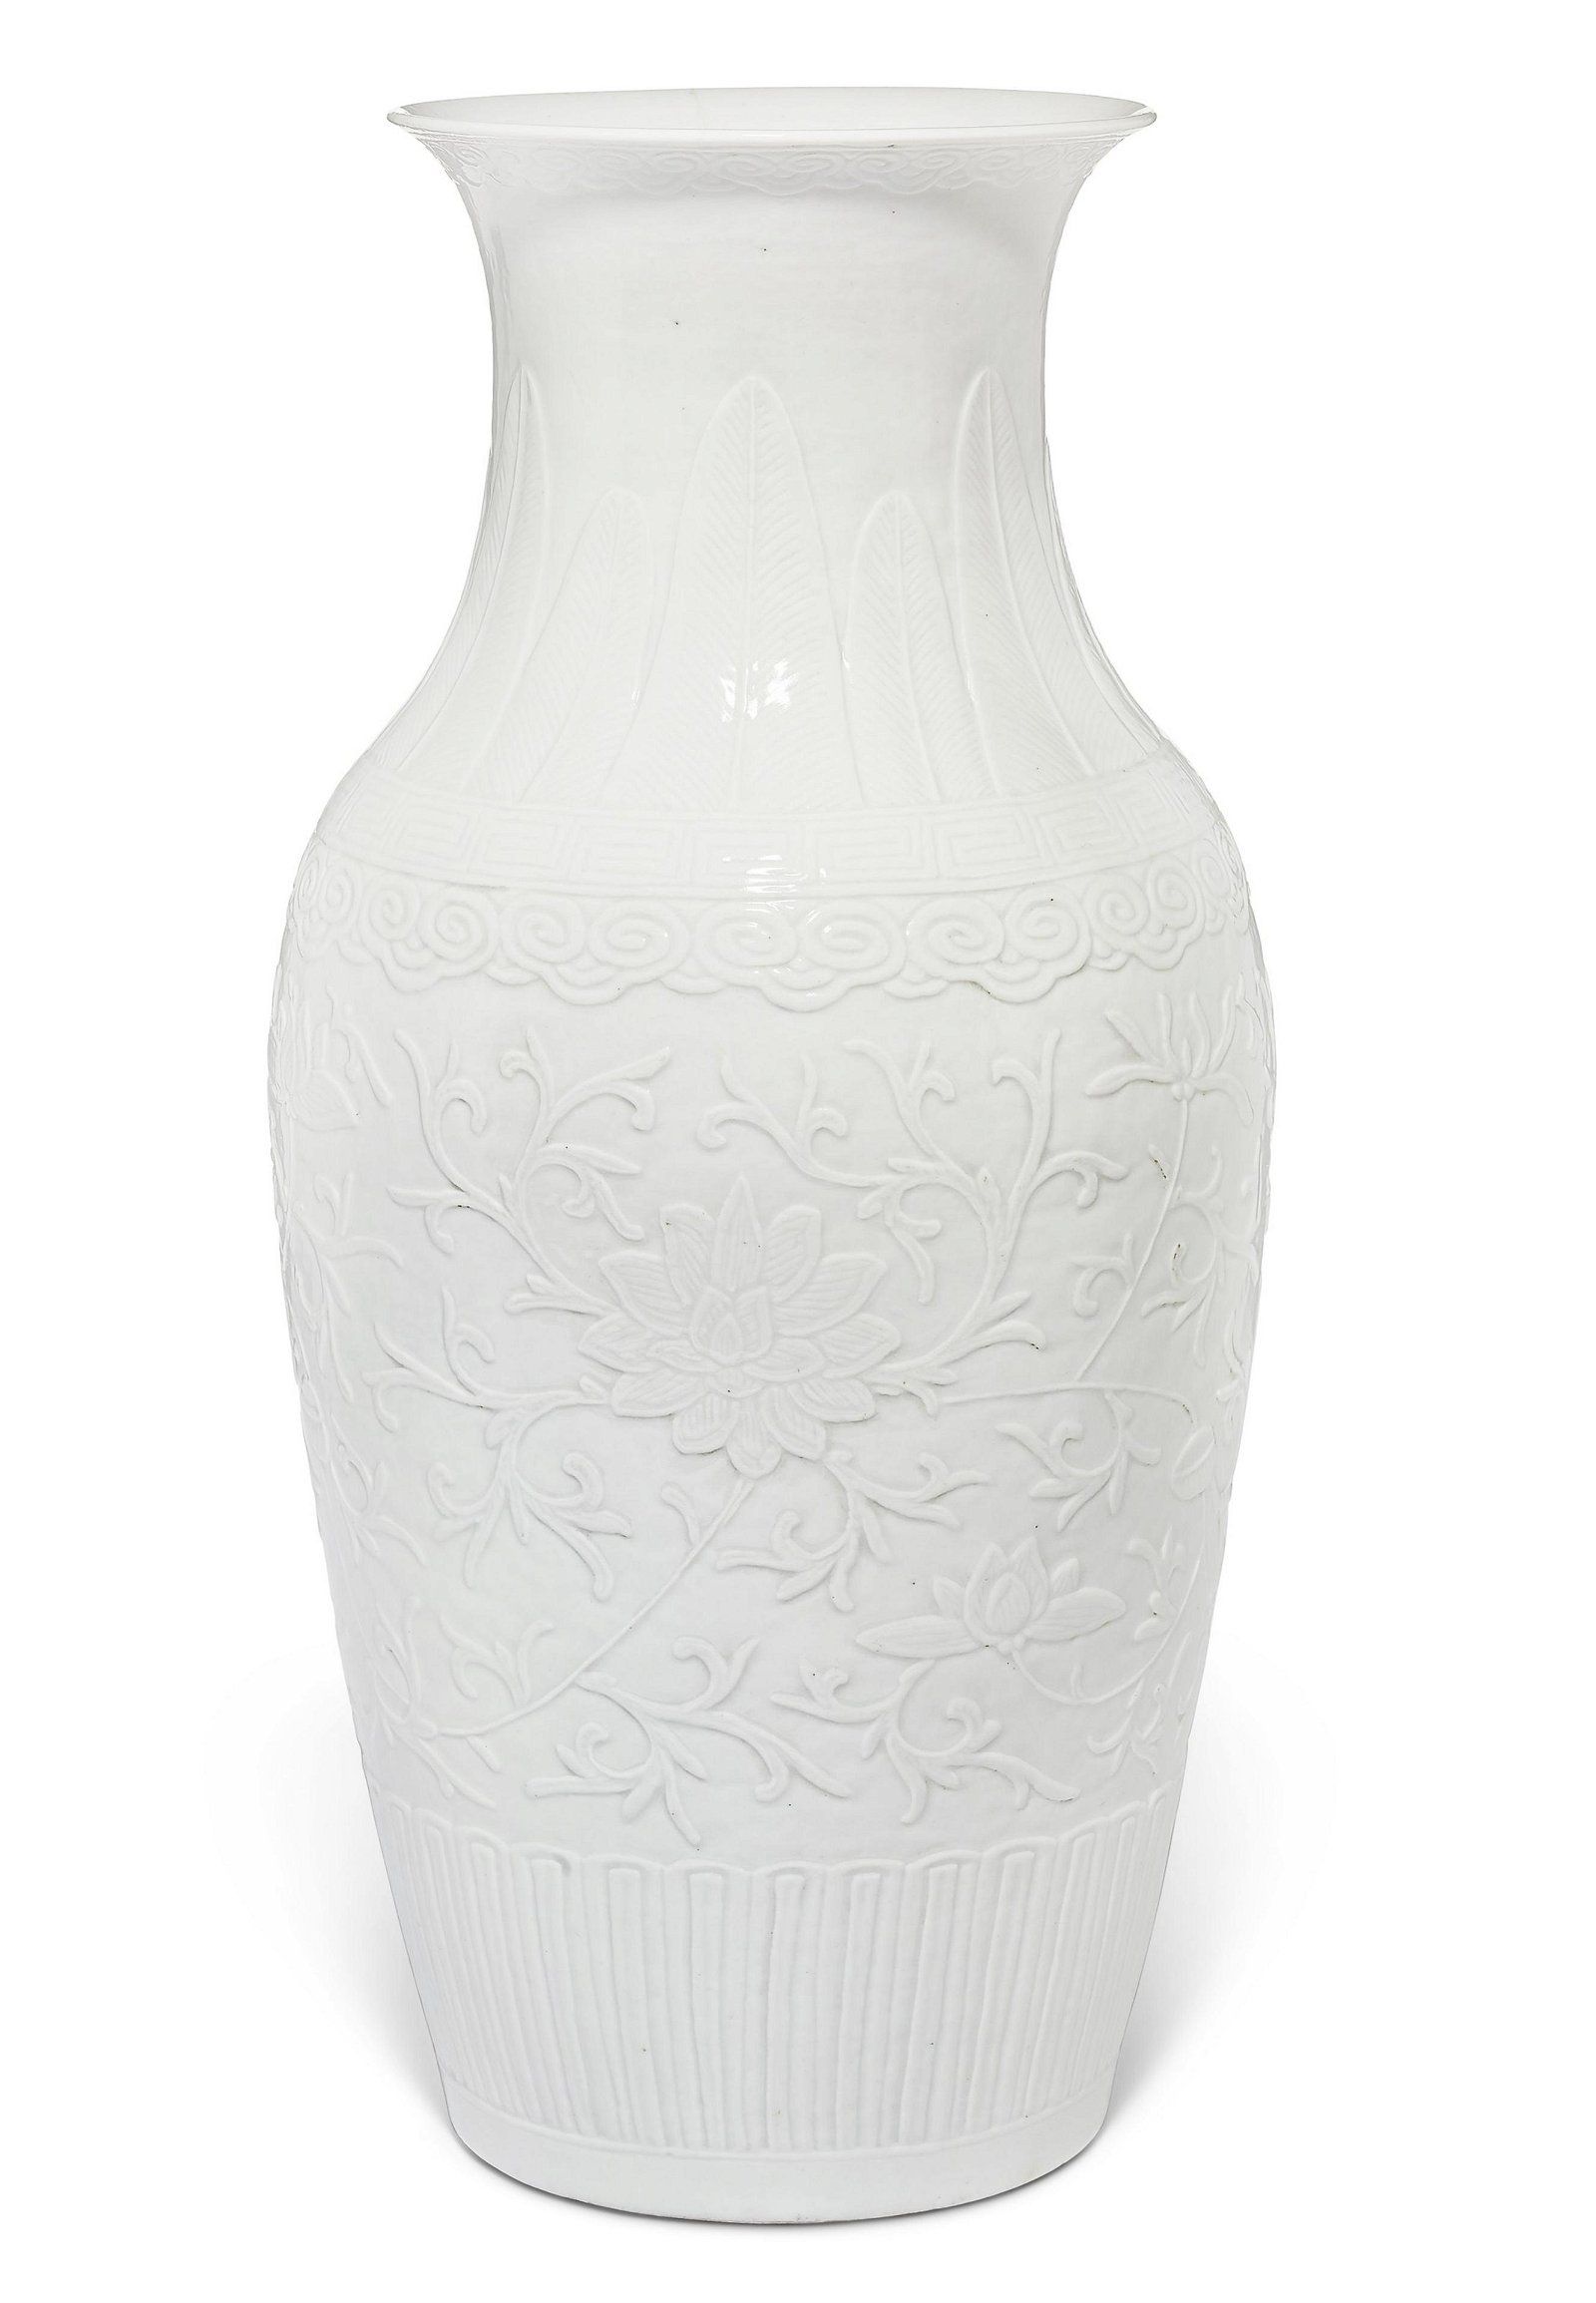 A MOLDED WHITE-GLAZED OVOID VASE